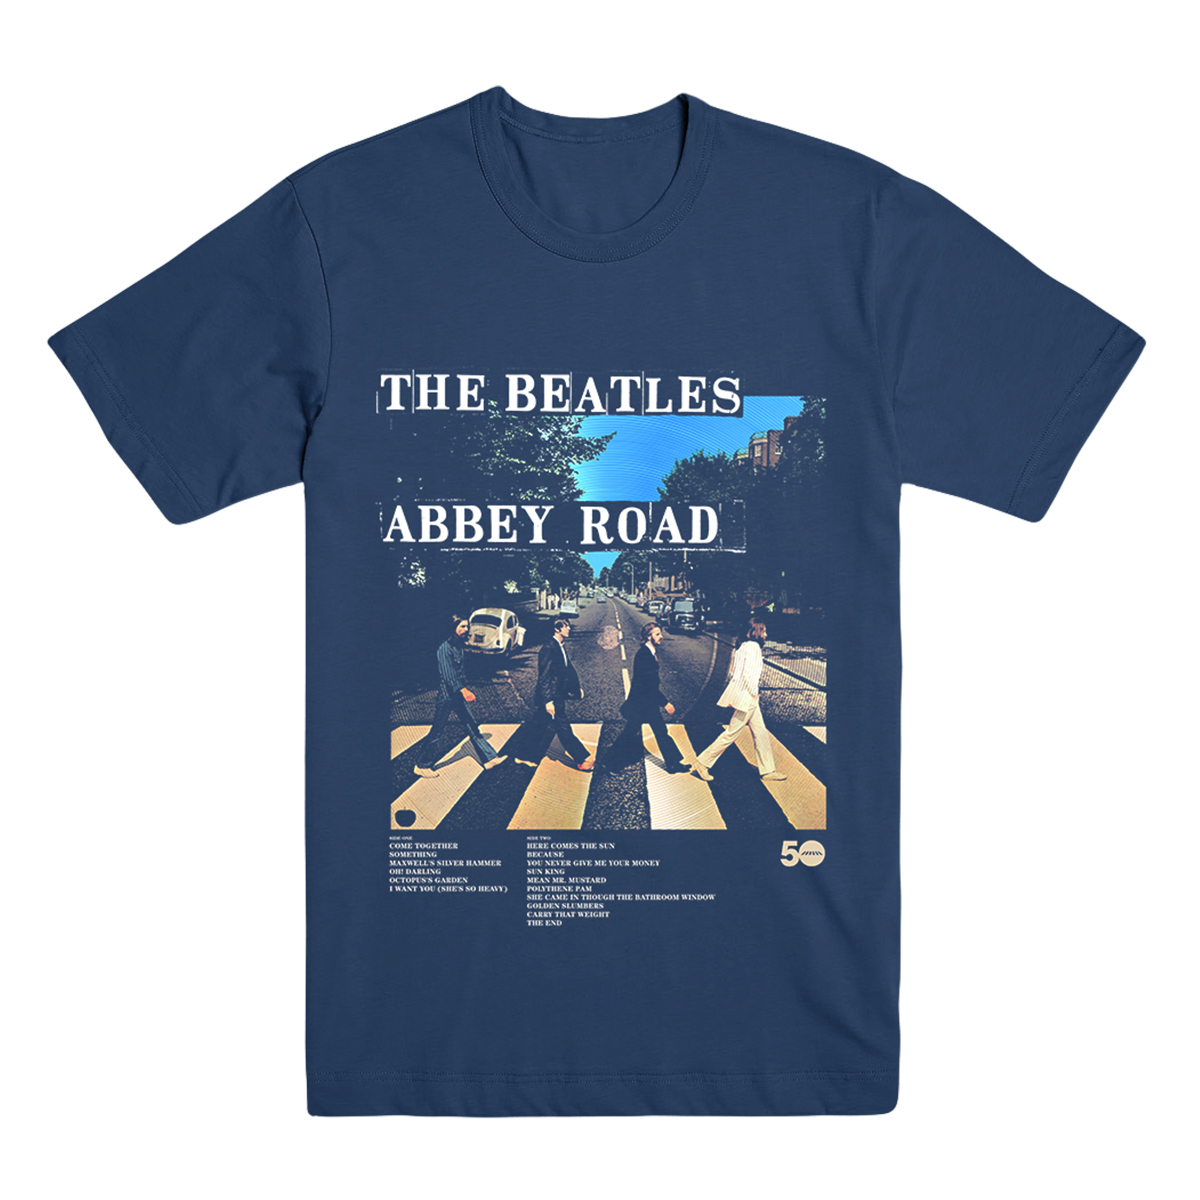 Abbey Road 50th Anniversary Tee